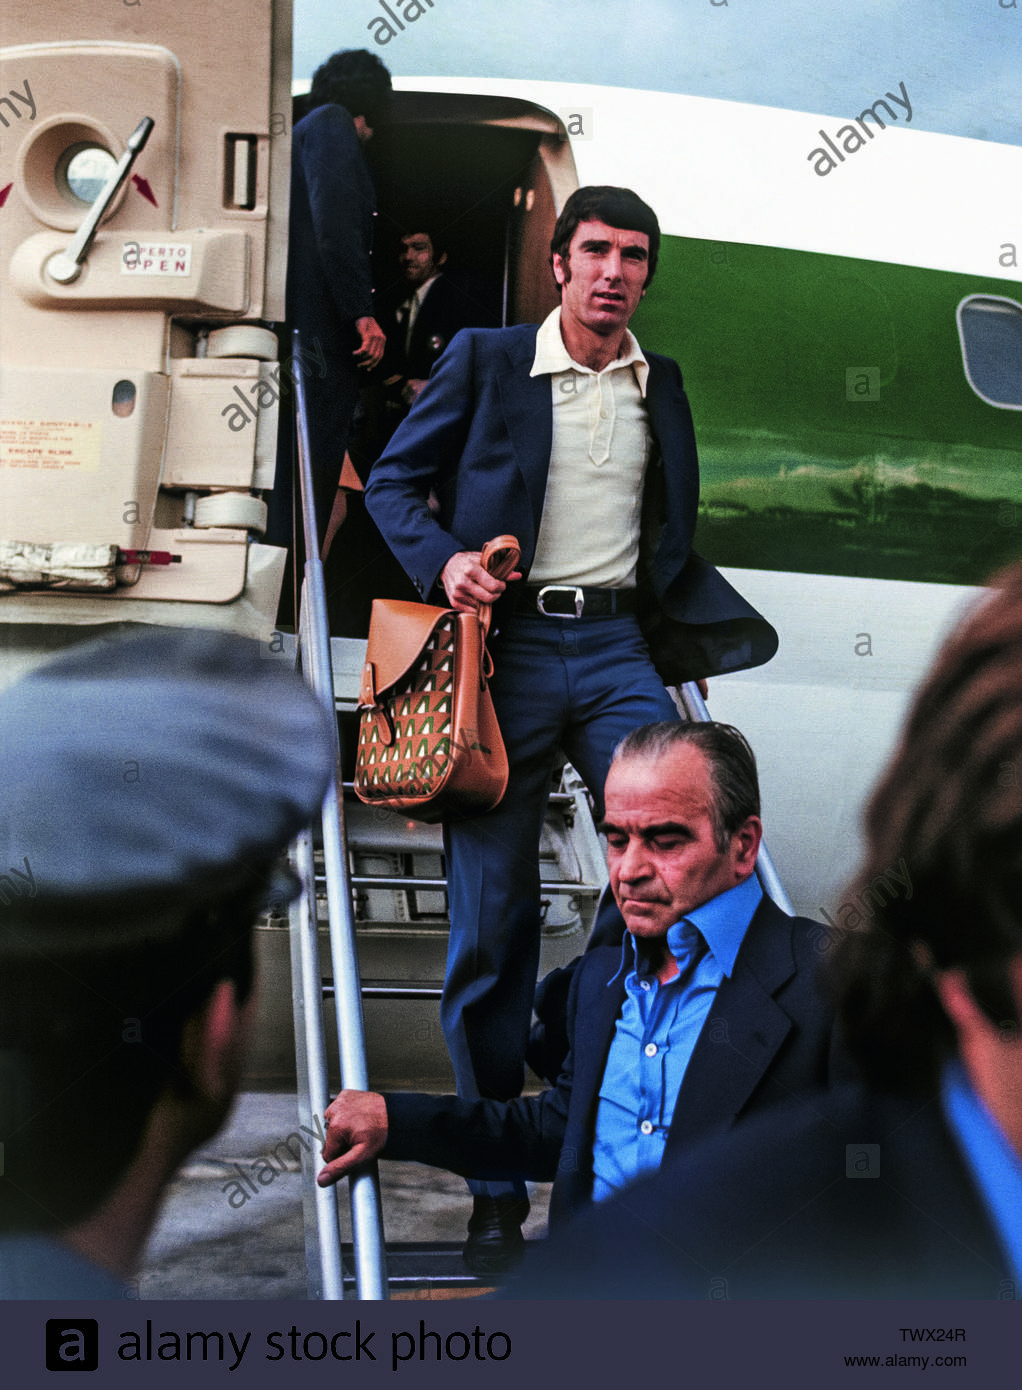 'Italy, end of June 1974. The goalkeeper Dino Zoff and the rest of the Italian national football team arrive back in Italy after their early elimination at the 1st round from the 1974 FIFA World Cup in West Germany.; late June 1974 date QS:P,+1974-06-00T00:00:00Z/10,P4241,Q40719766; Jeff Livingstone (November 29, 2014). The Age of Innocence: Football in the 1970s (in english). inbedwithmaradona.com., cf. Reuel Golden , ed. (in english) (2014)  The Age of Innocence: Football in the 1970s, Köln, Germany:  TASCHEN GmbH  ISBN:  978-3836547970.; Mondadori Collection / Getty Images; ' - Stock Image